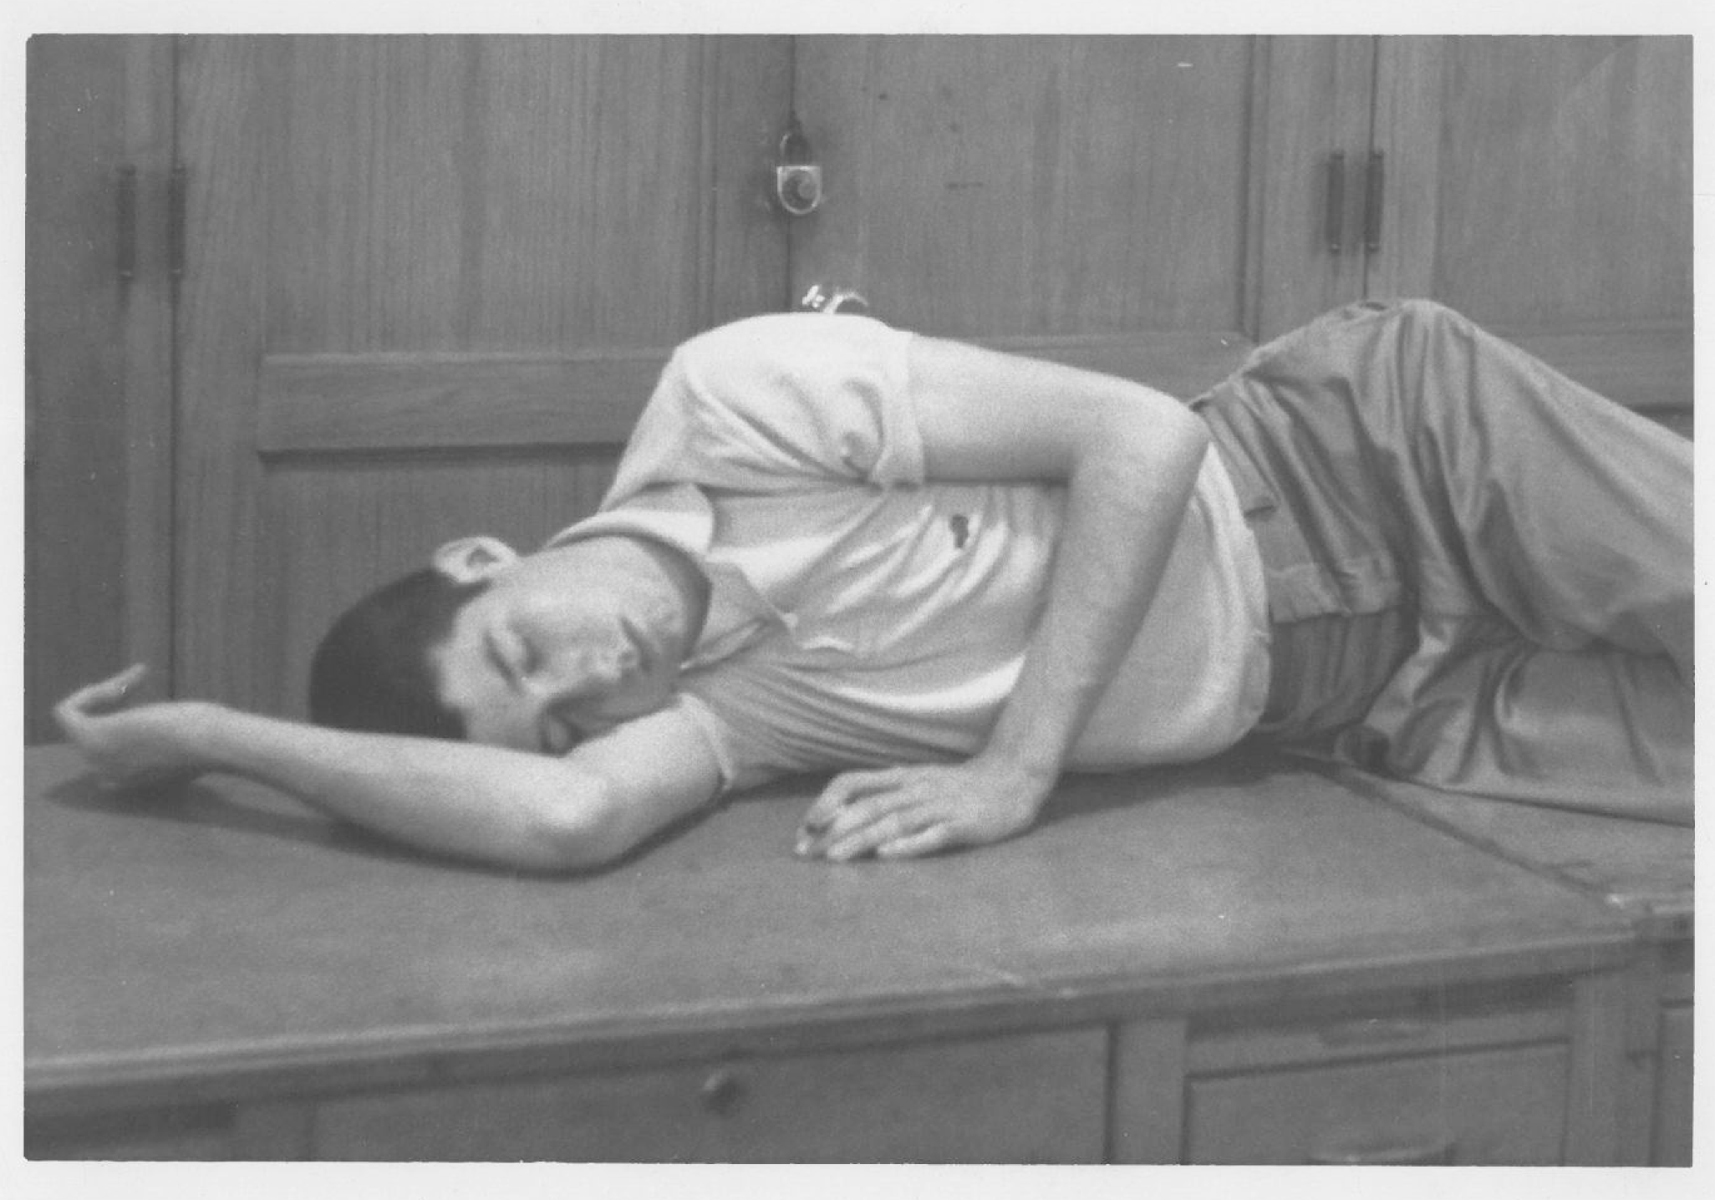 Student Tom Hayden asleep on a desk at the Michigan Daily, circa 1960. Image credit: Tom Hayden Papers held at the University of Michigan Library